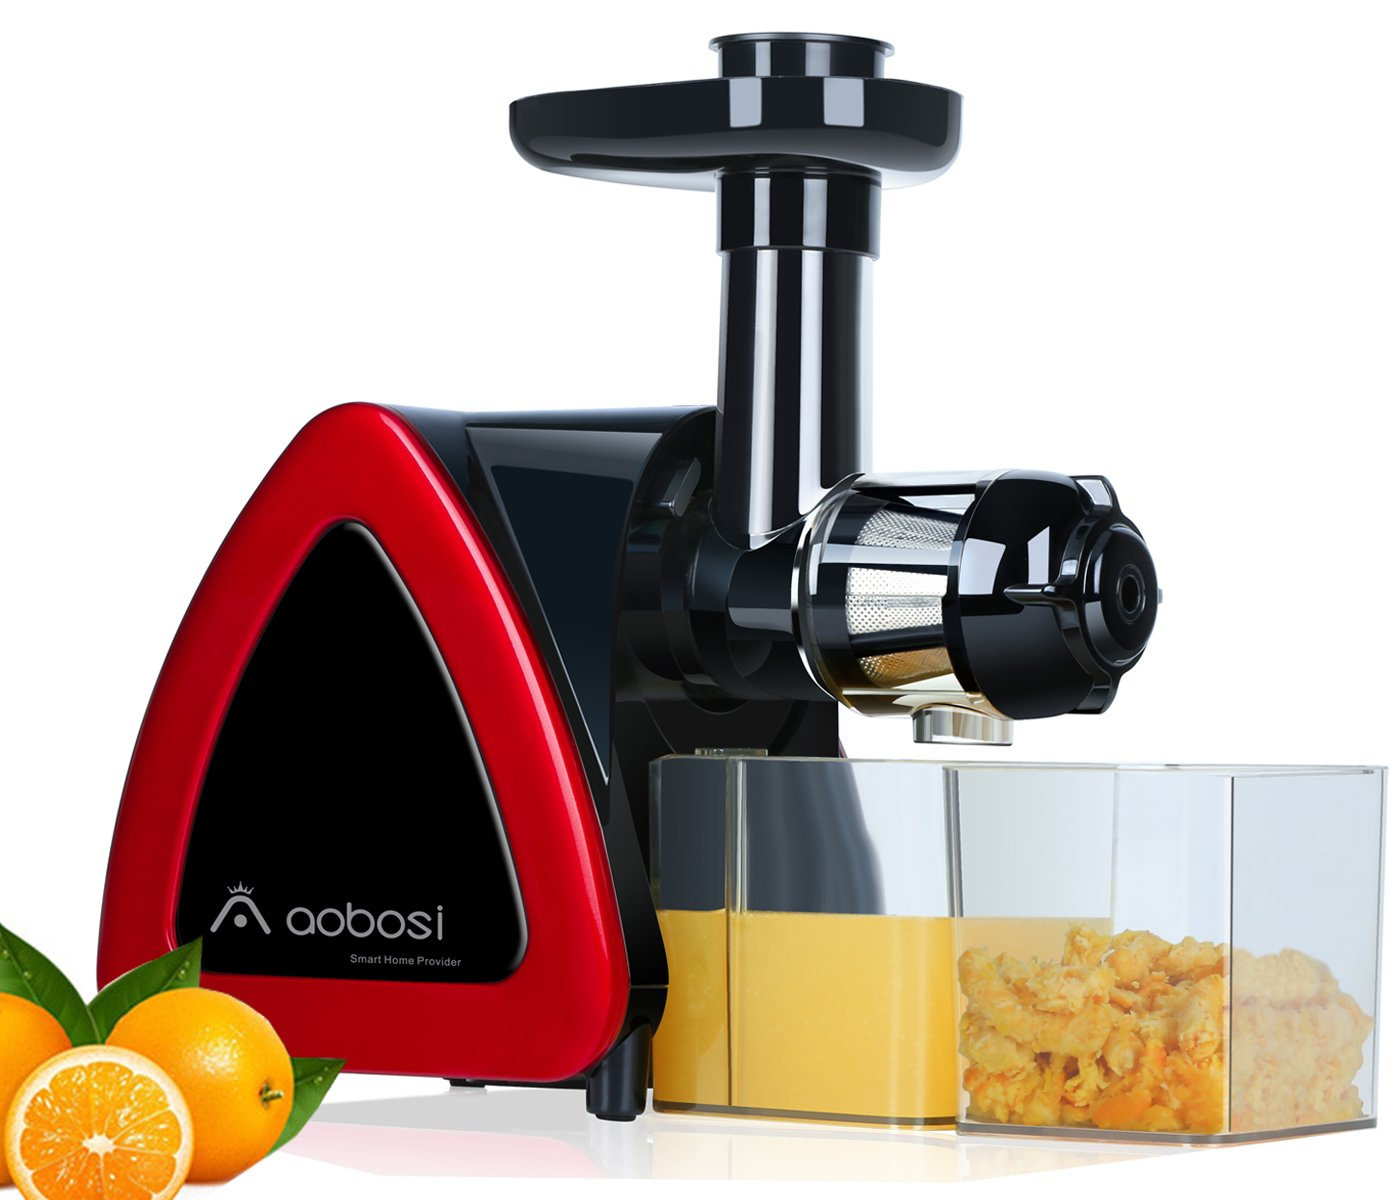 Aobosi Electric Slow Masticating Juicer Extractor,Slow Juicer For High Nutrient Value,Fresh Fruit and Vegetable Juice with Juice Jug and Cleaning Brush,Certified by ETL.